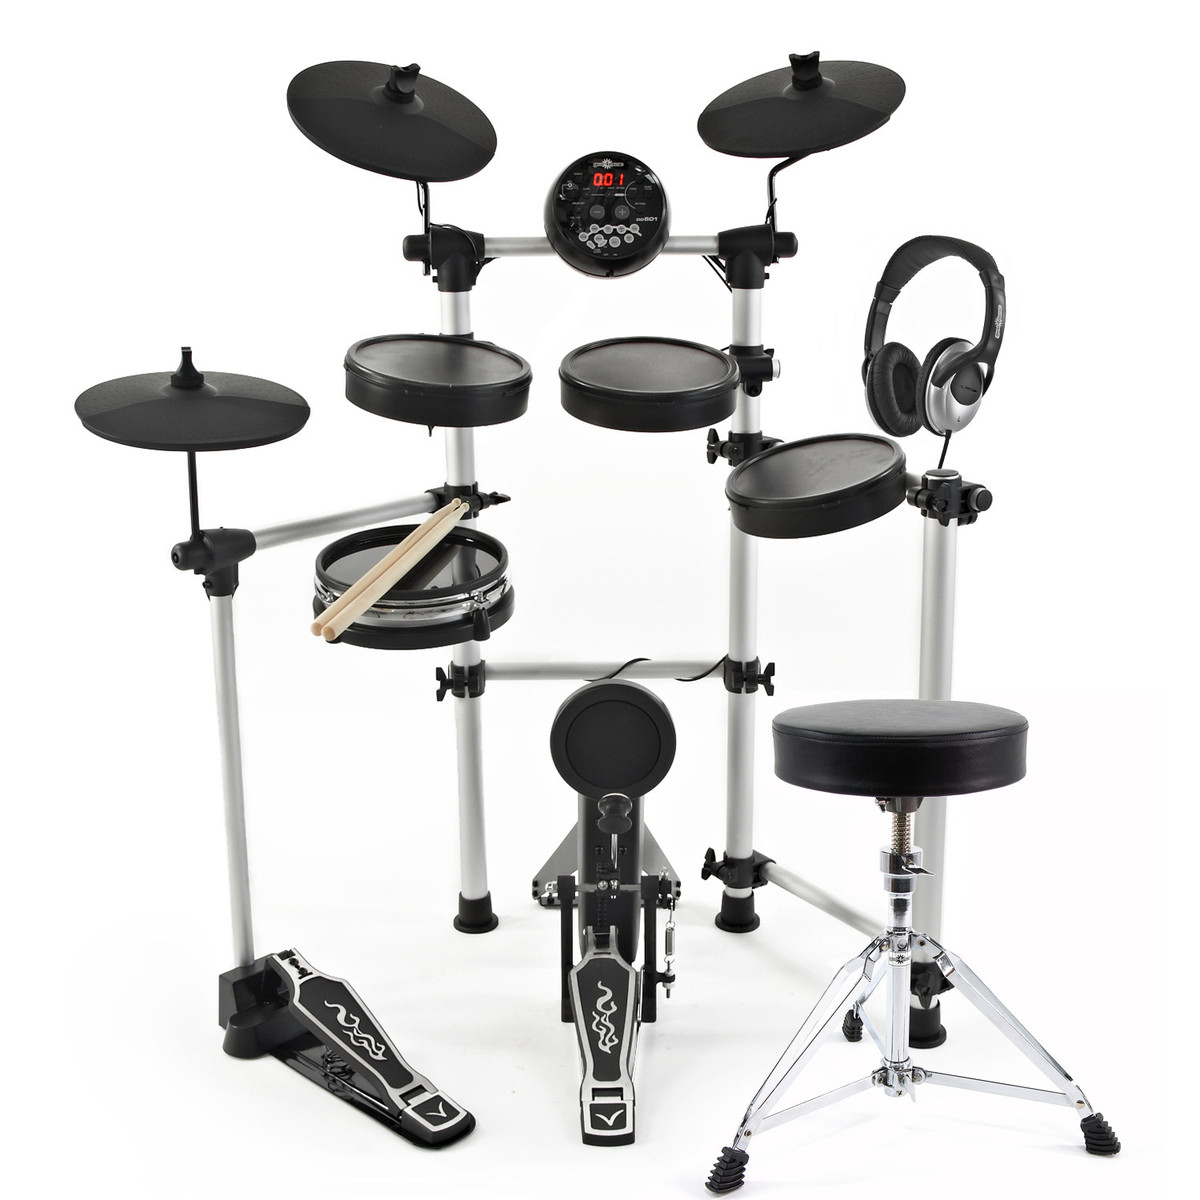 Disc digital drums 501 electronic drum kit package deal at digital drums 501 electronic drum kit package deal loading zoom solutioingenieria Image collections